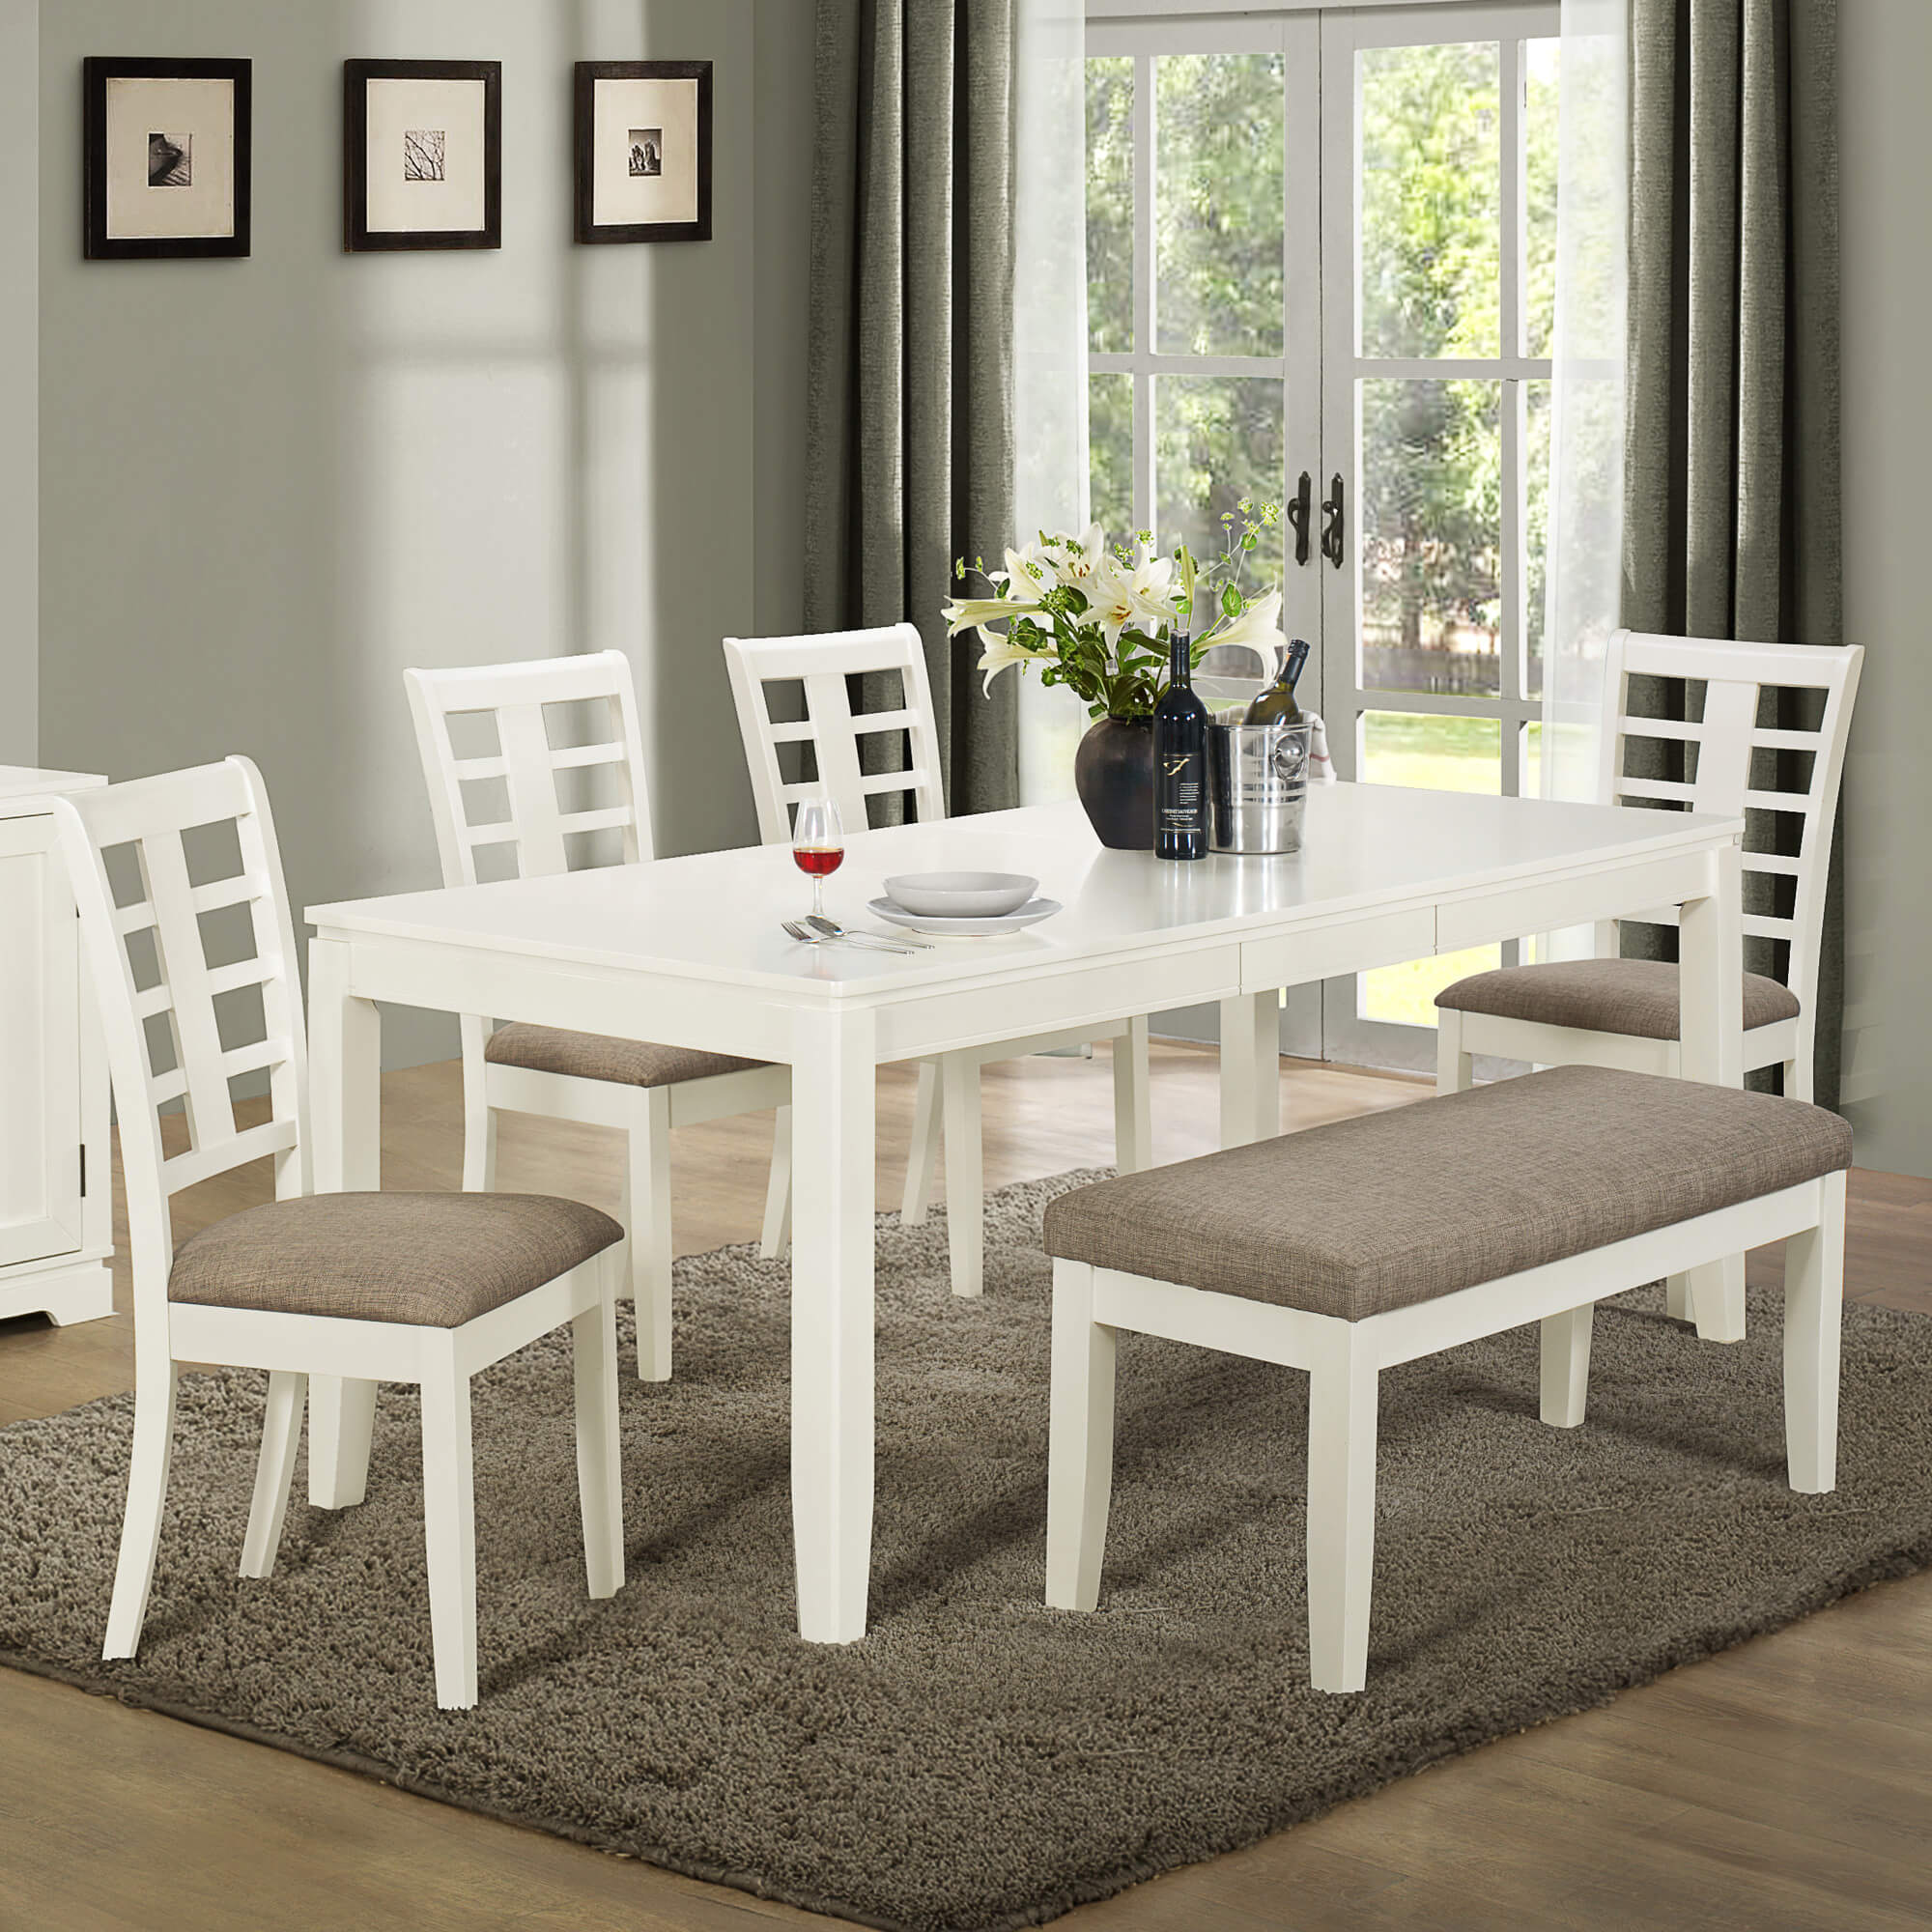 Rooms To Go Dining Sets: 26 Dining Room Sets (Big And Small) With Bench Seating (2020